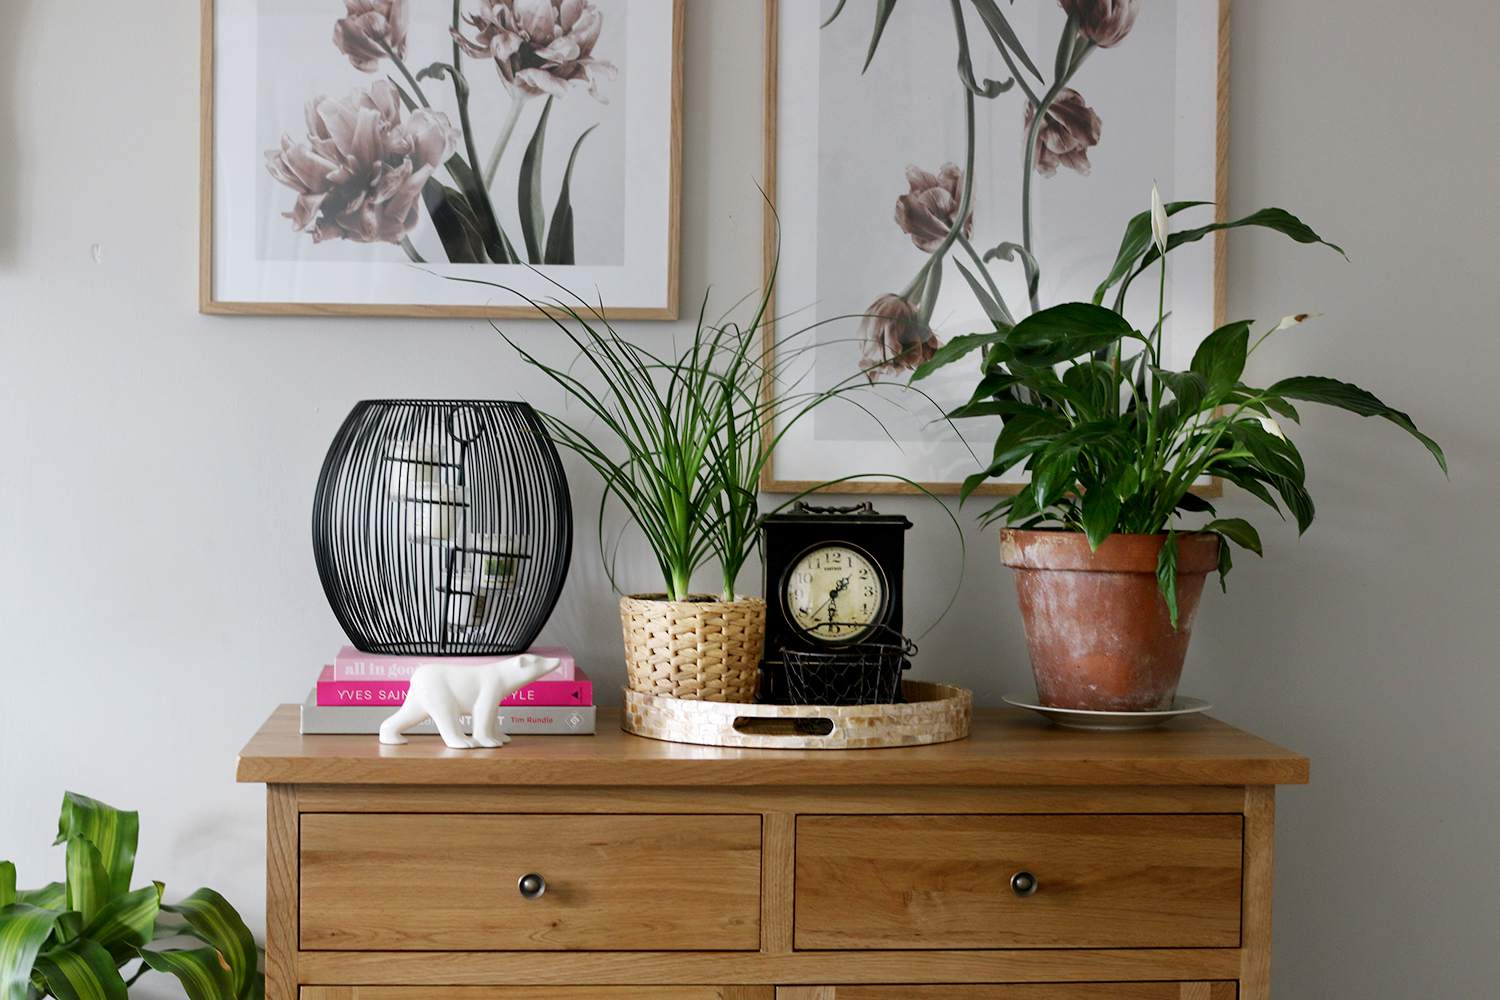 console adorned with plants